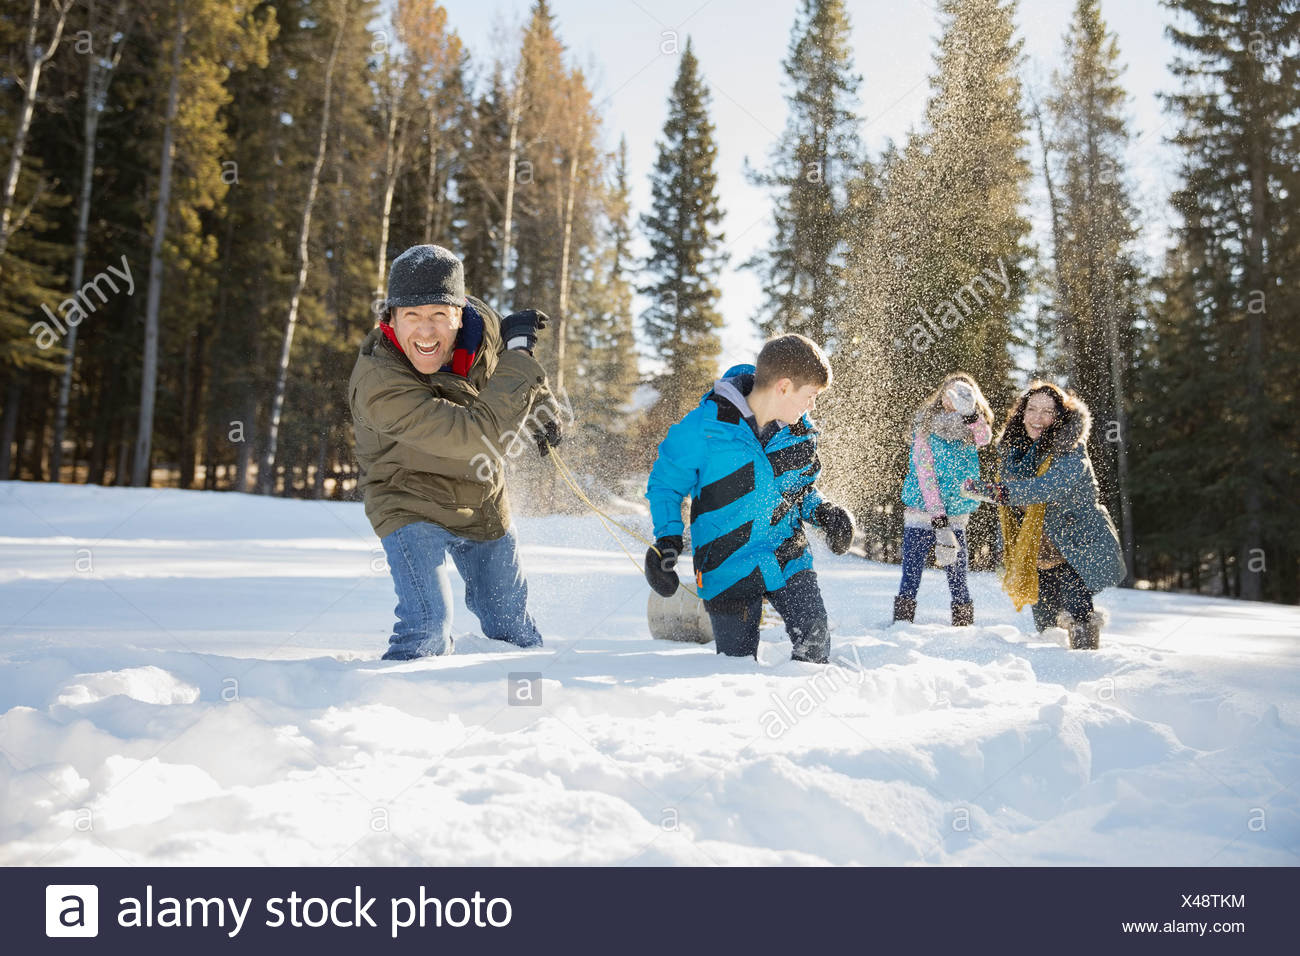 Playful family having snowball fight - Stock Image